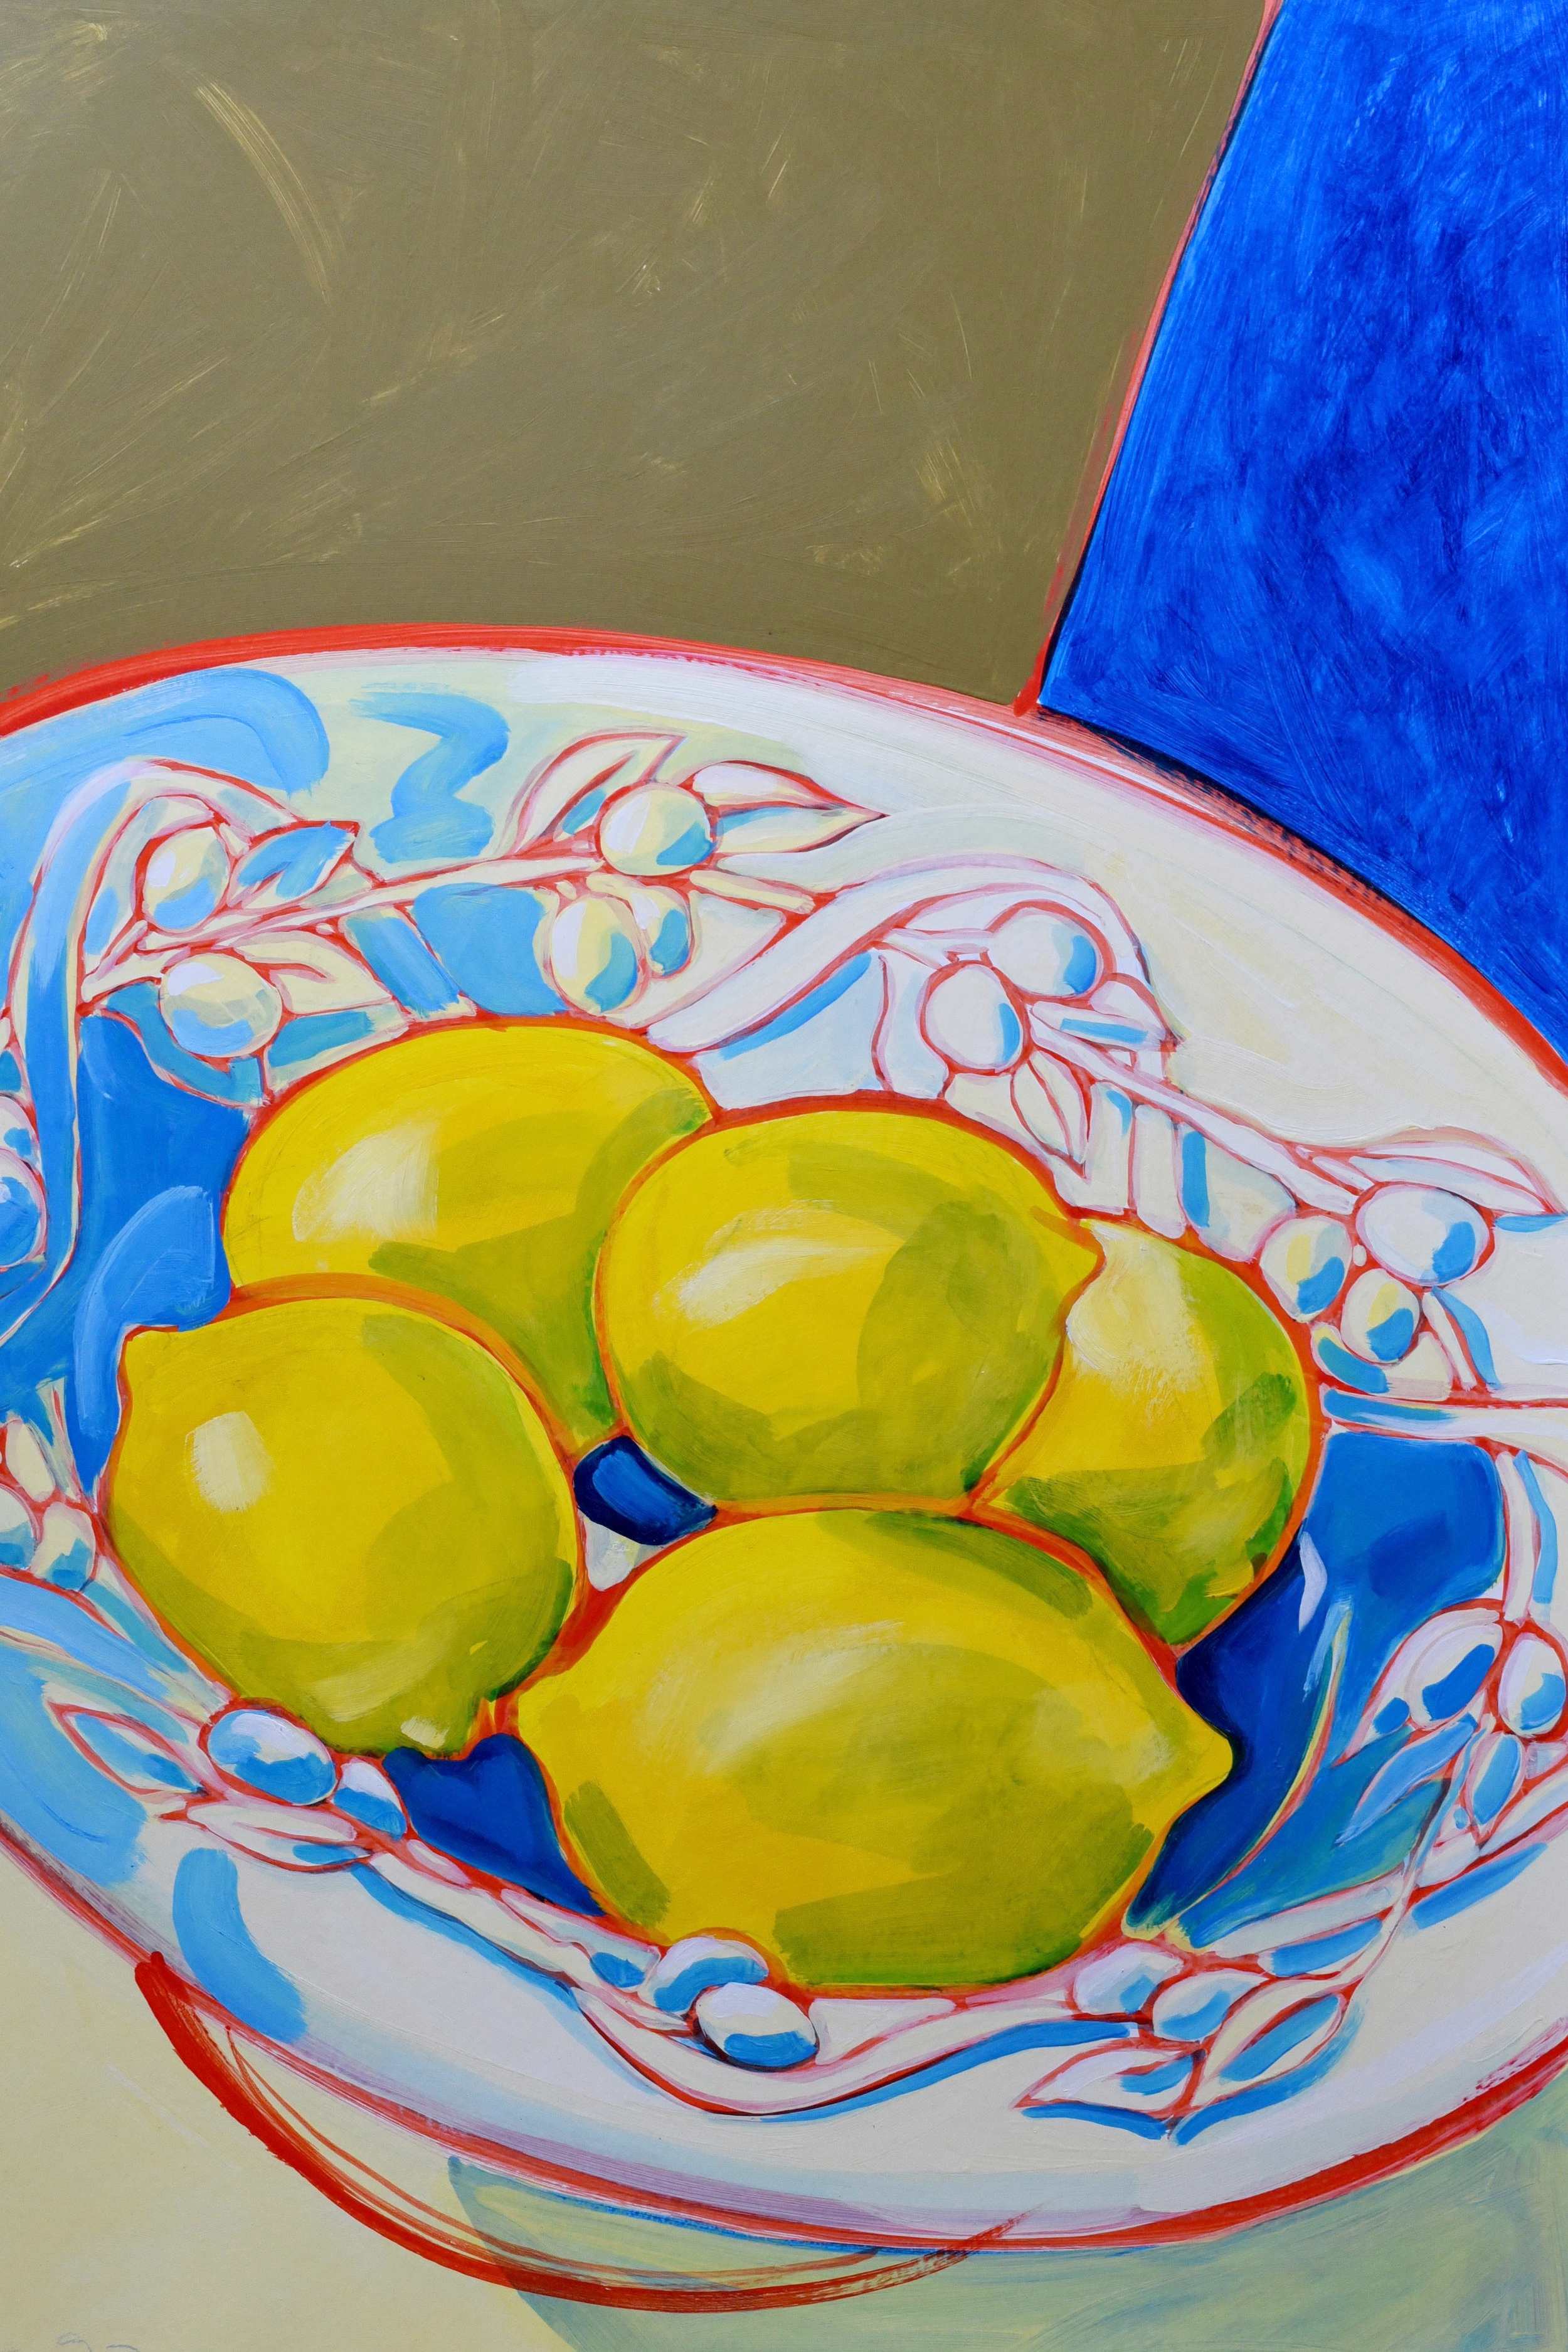 Lemons in olive harvest bowl using acrylic paint on art board